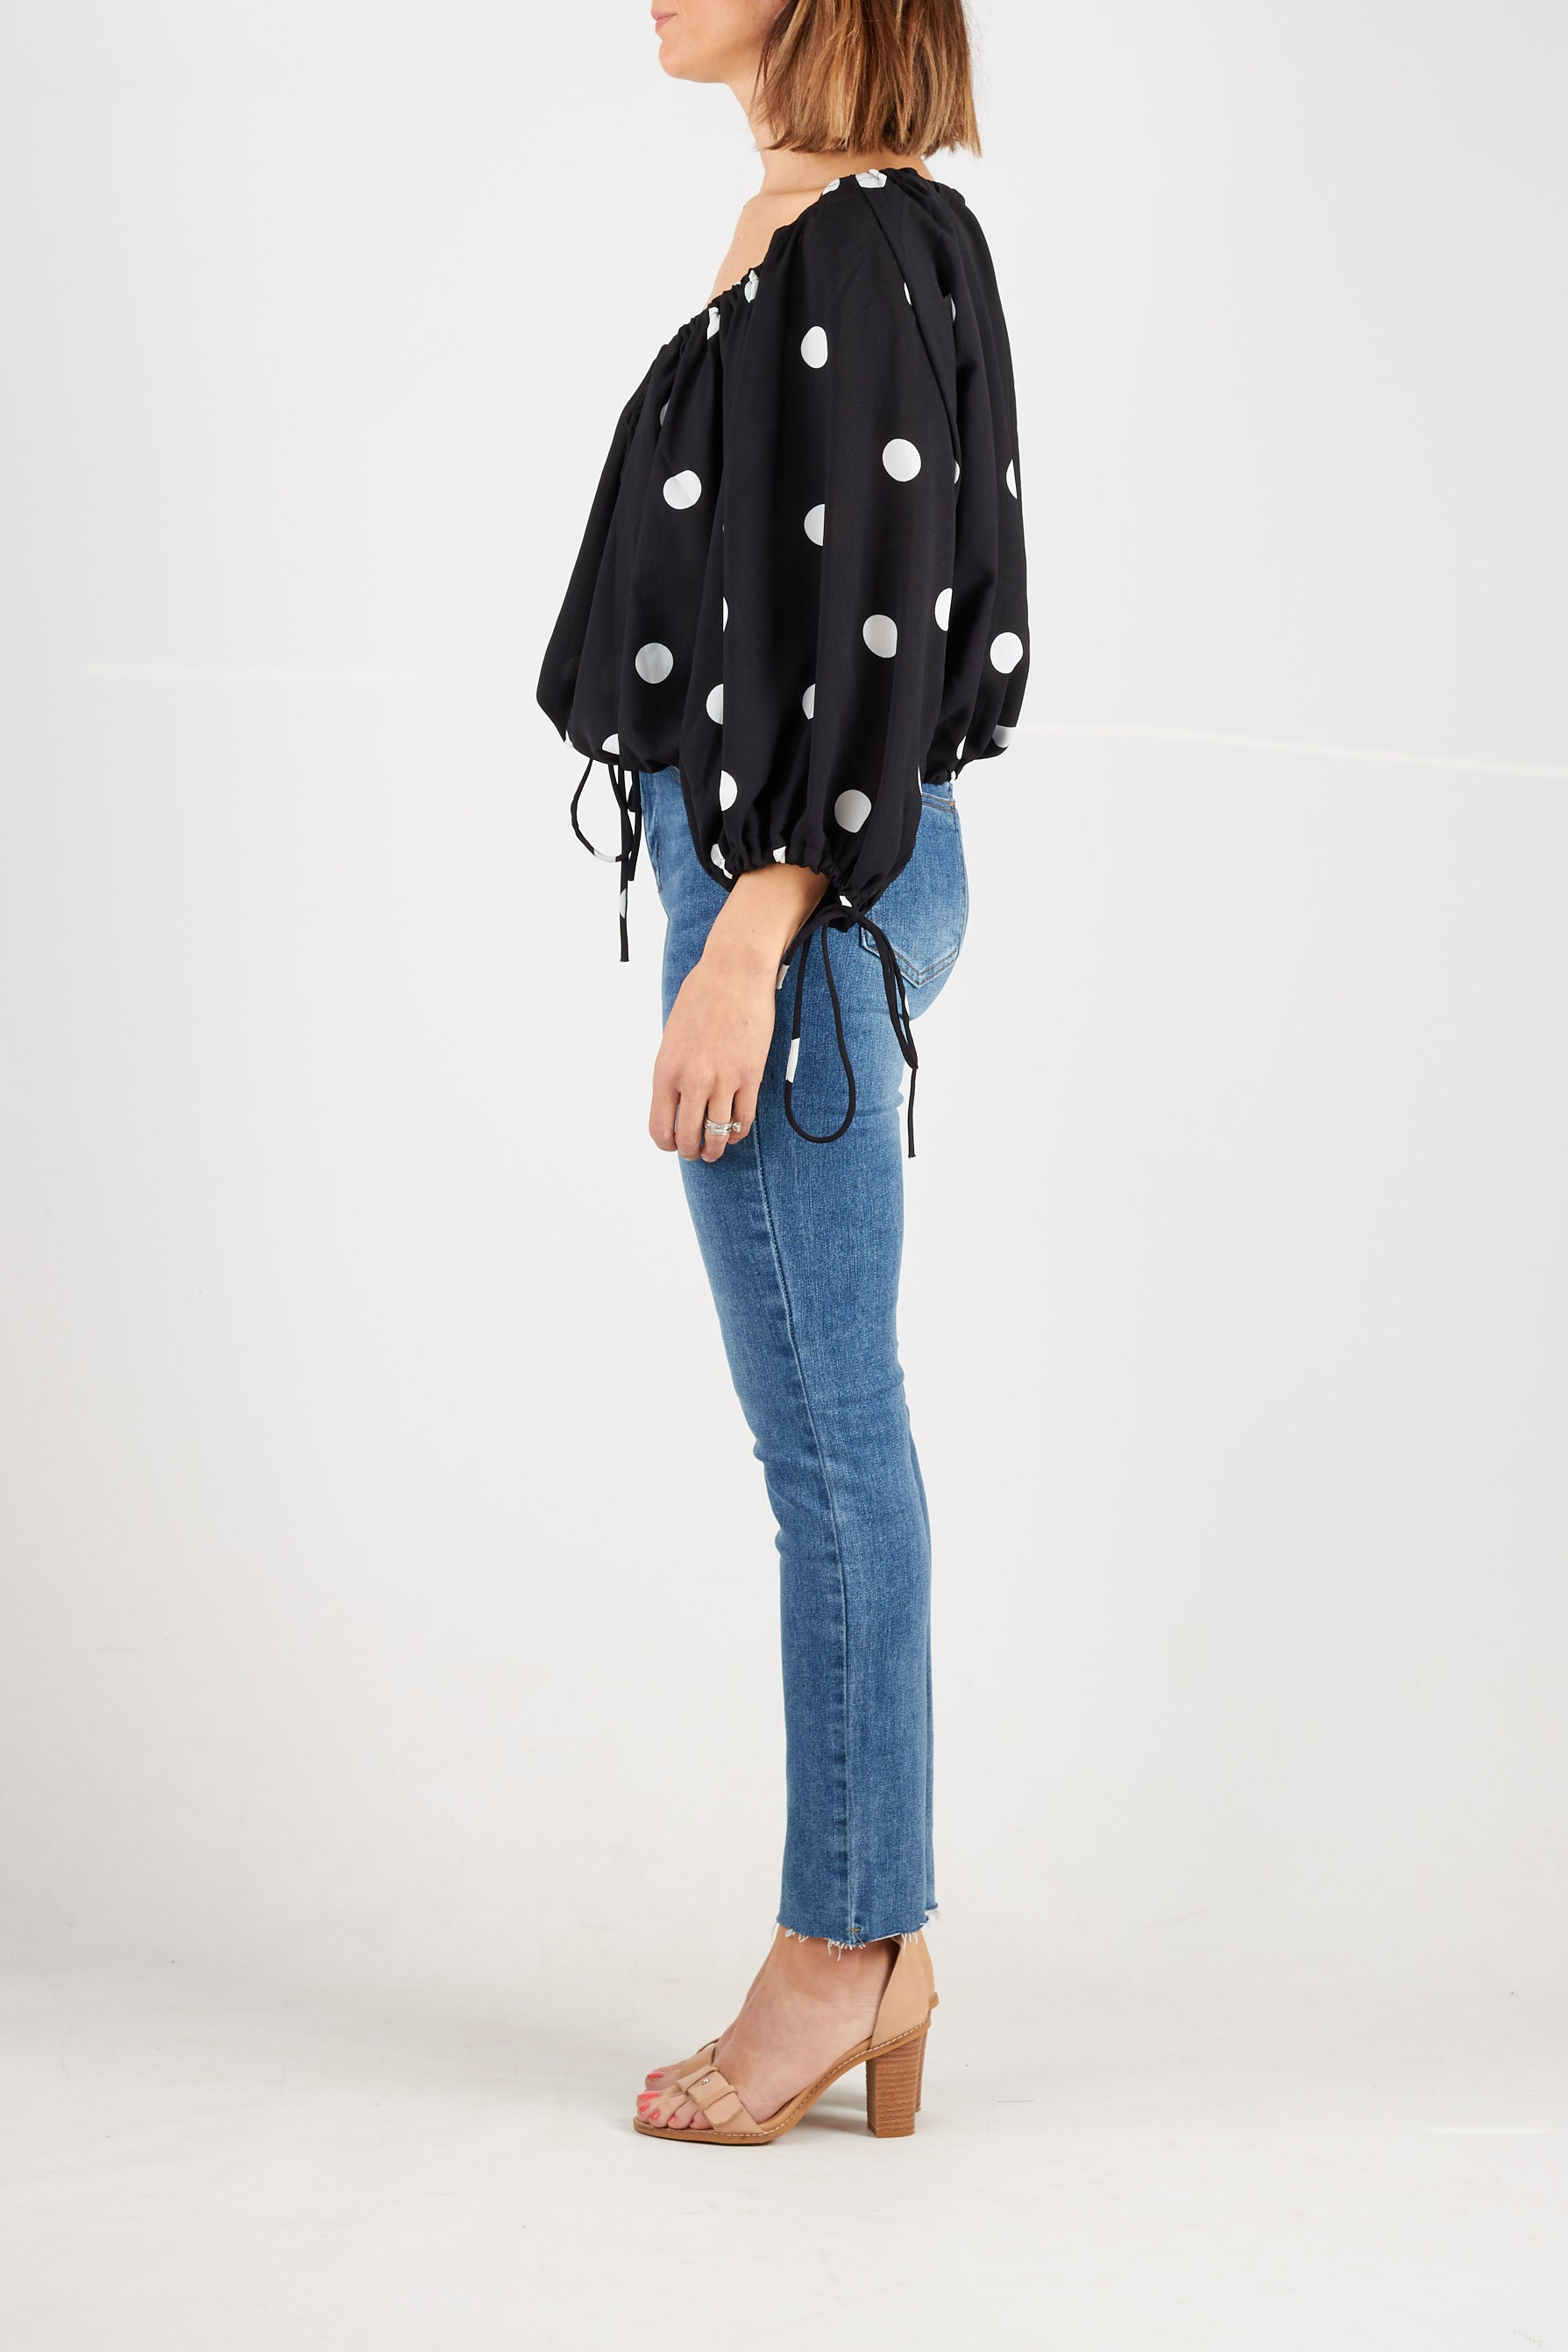 Black blouse with large white spots with drawstring neckline, balloon sleeve cuffs  and hem. Also available in white with black spots.